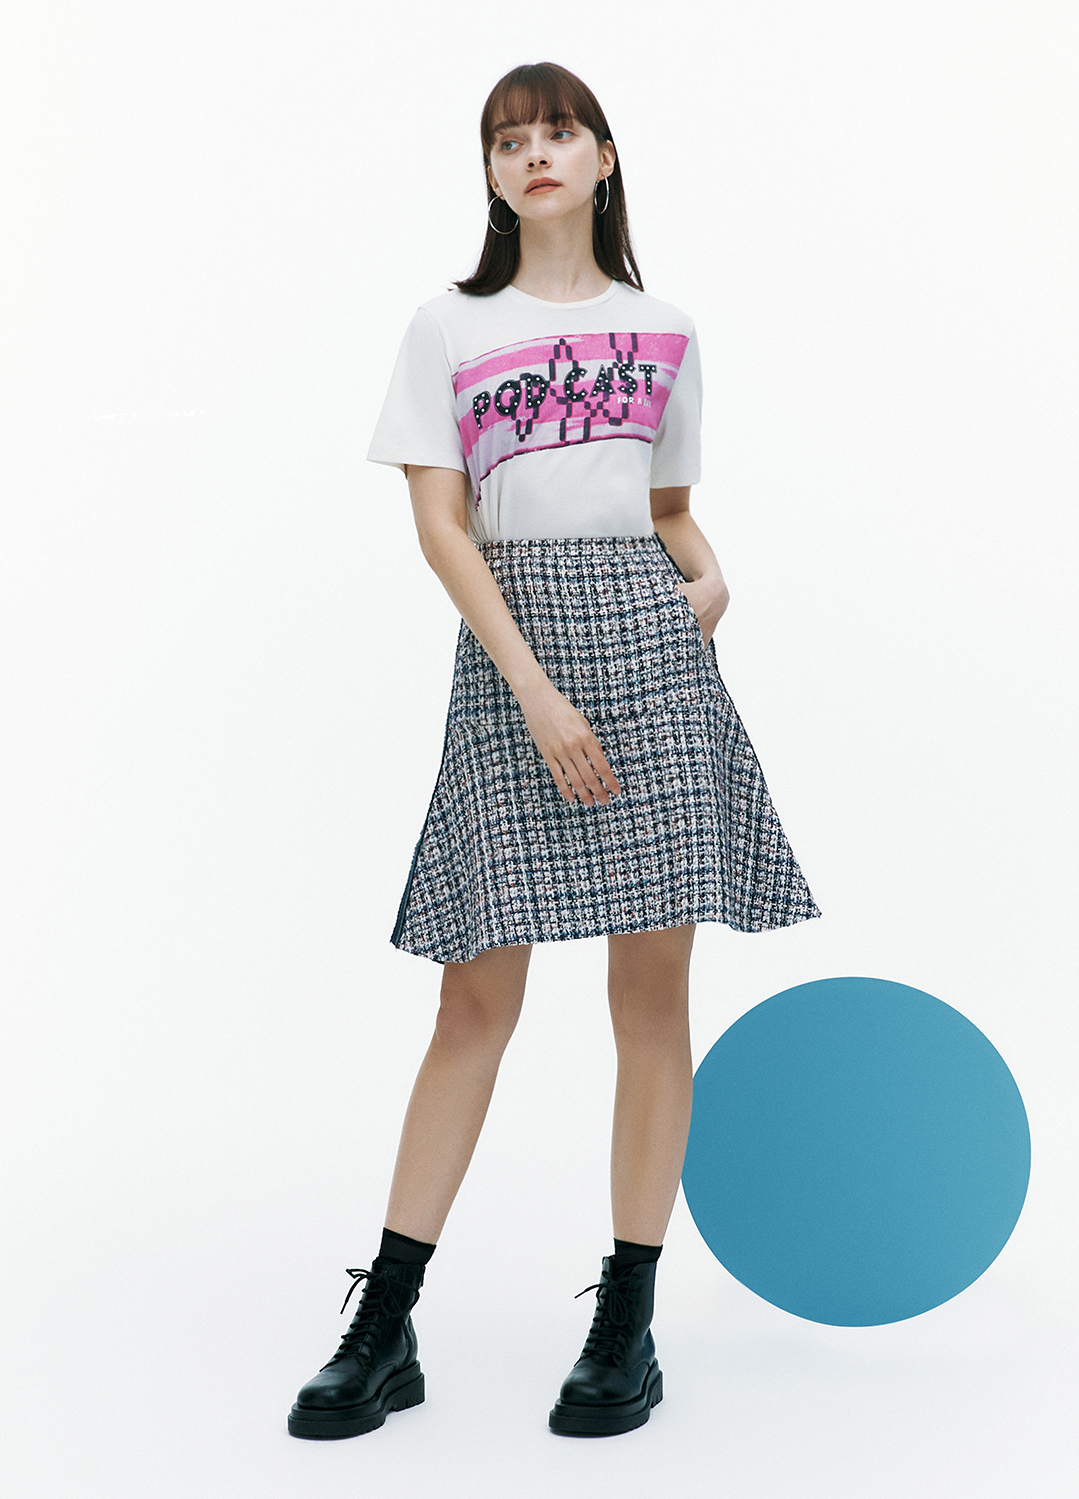 [FAD] Podcast Lettering Half Sleeve T-shirt